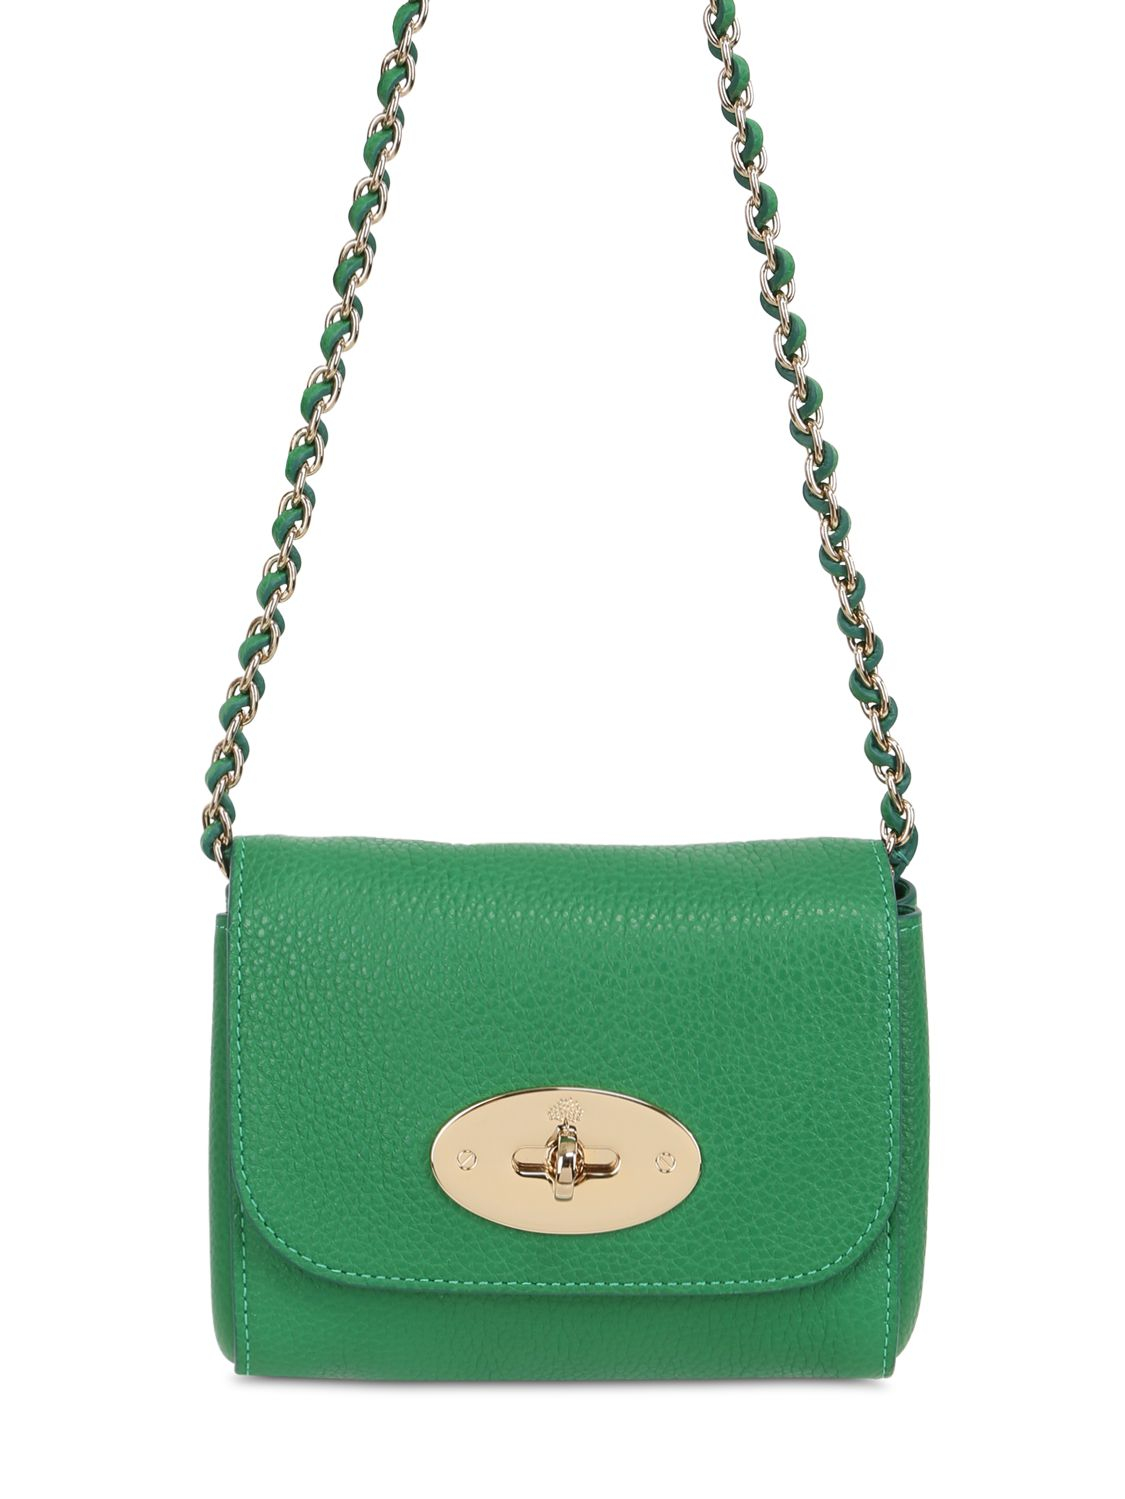 e2b28e125760 ... usa lyst mulberry mini lily grained leather shoulder bag in green 35214  48f38 ...